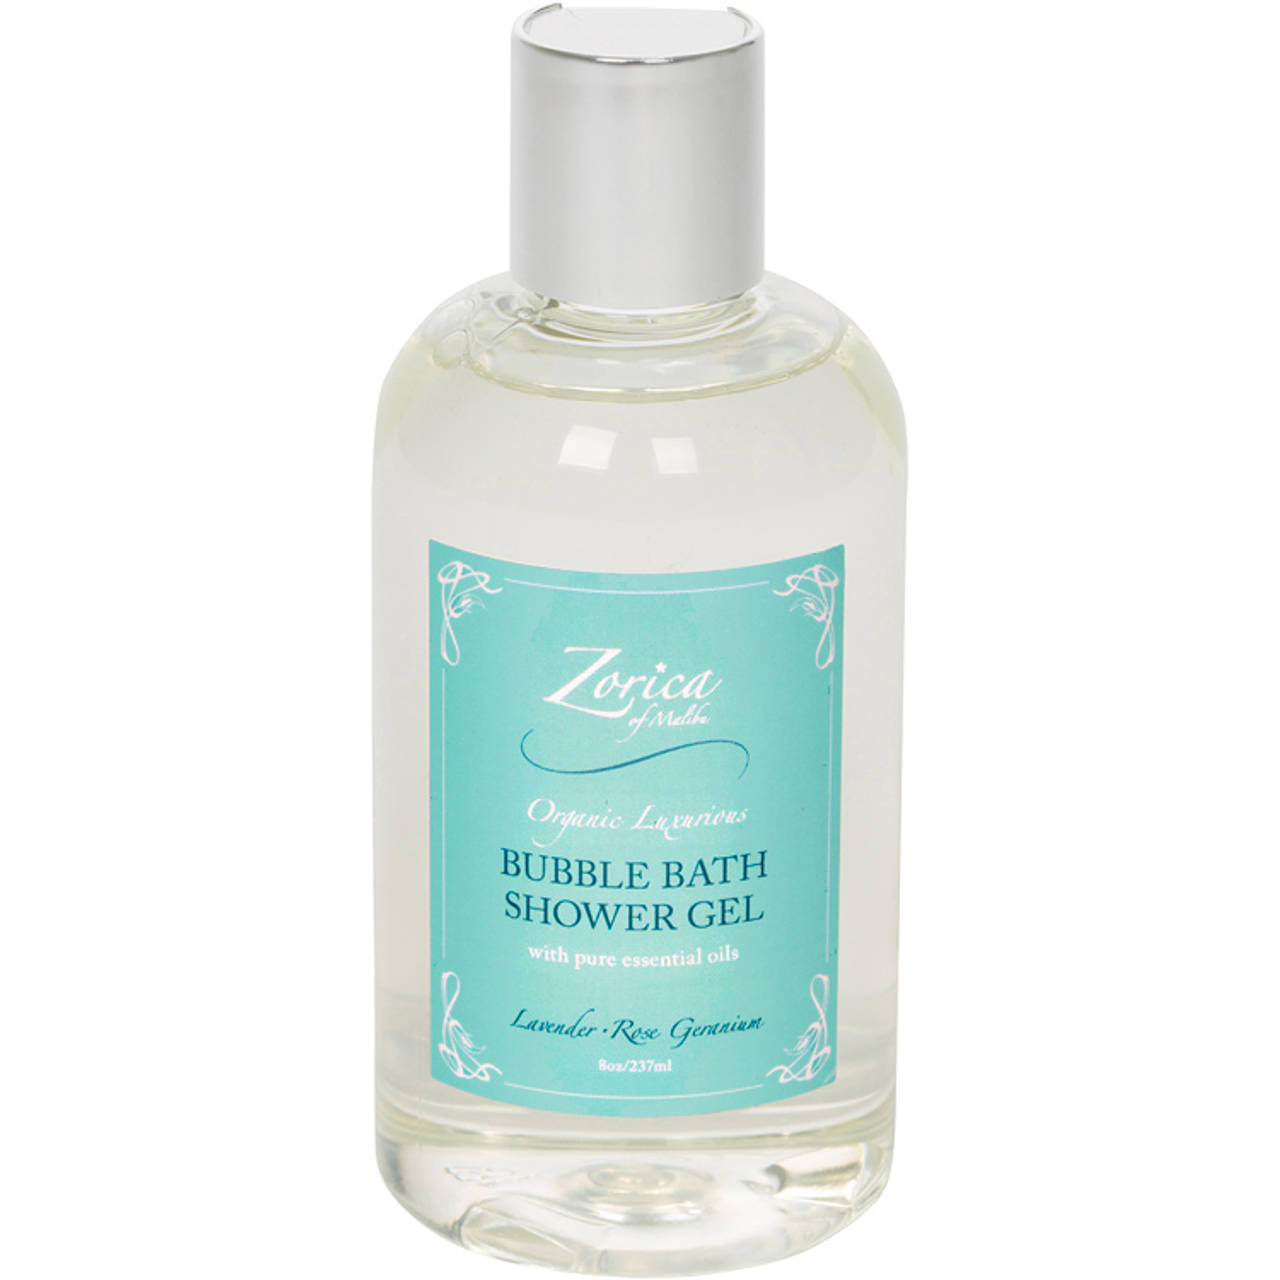 Serenity Shower Gel/Bubble Bath